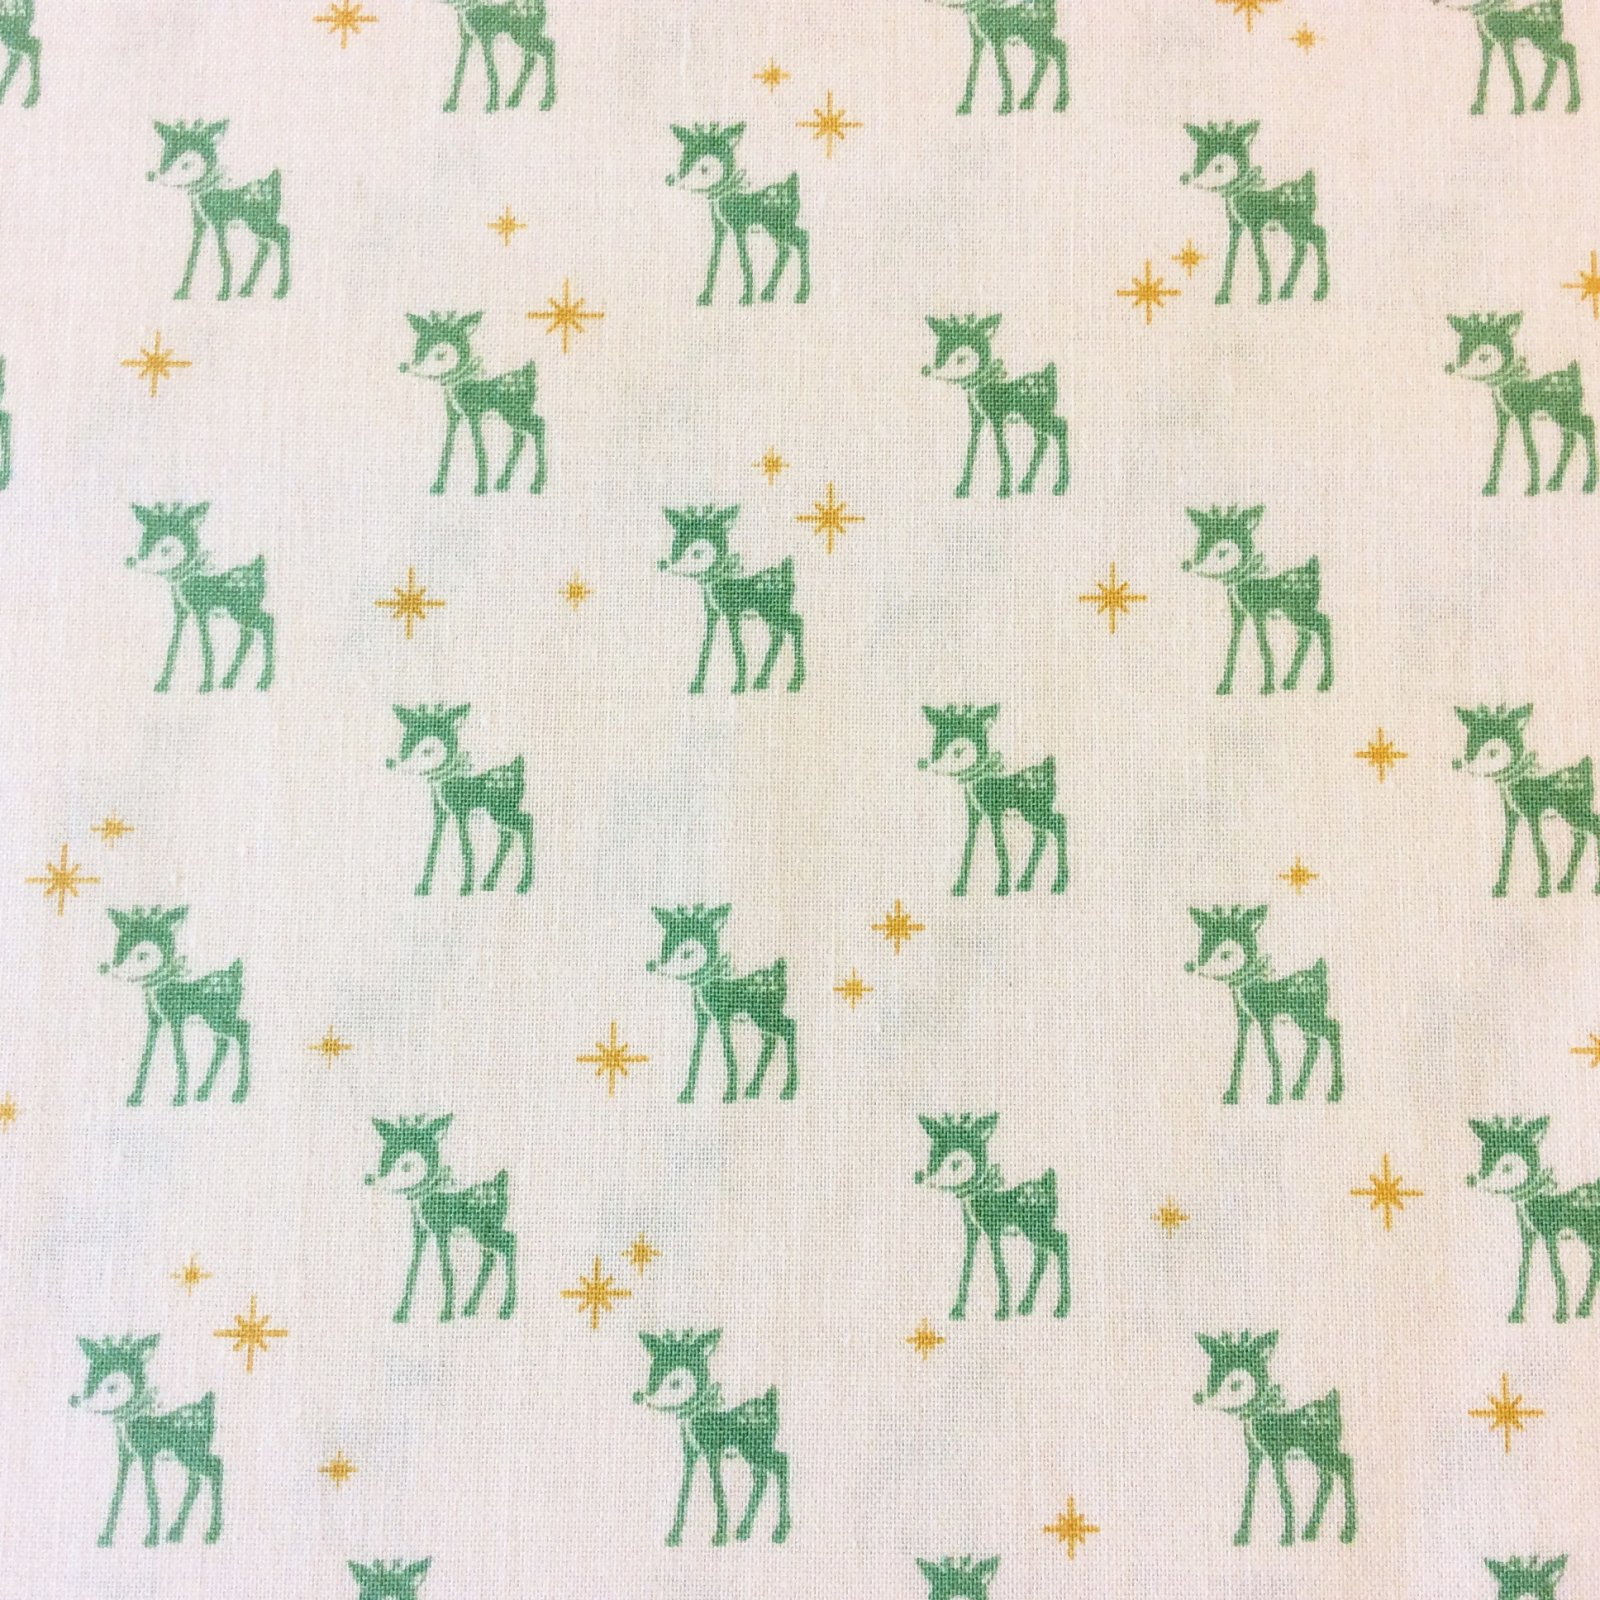 Reindeer Christmas Winter Holiday Star Deer Retro Vintage Look 50's 60's Cute Cotton Quilt Fabric CHE017